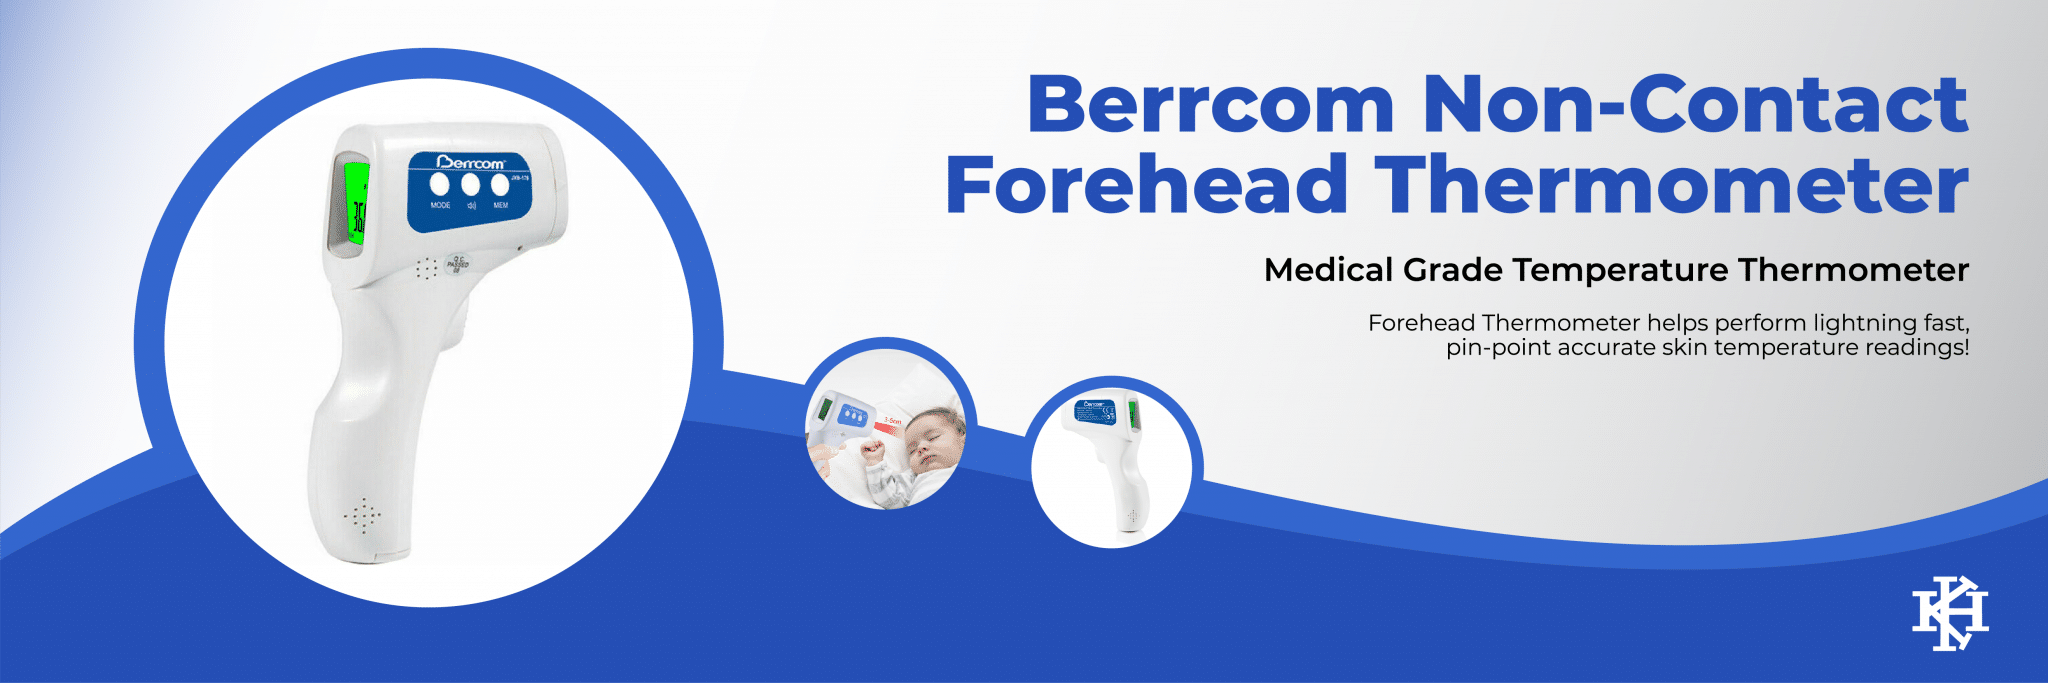 Berrcom Non-Contact Forehead Thermometer